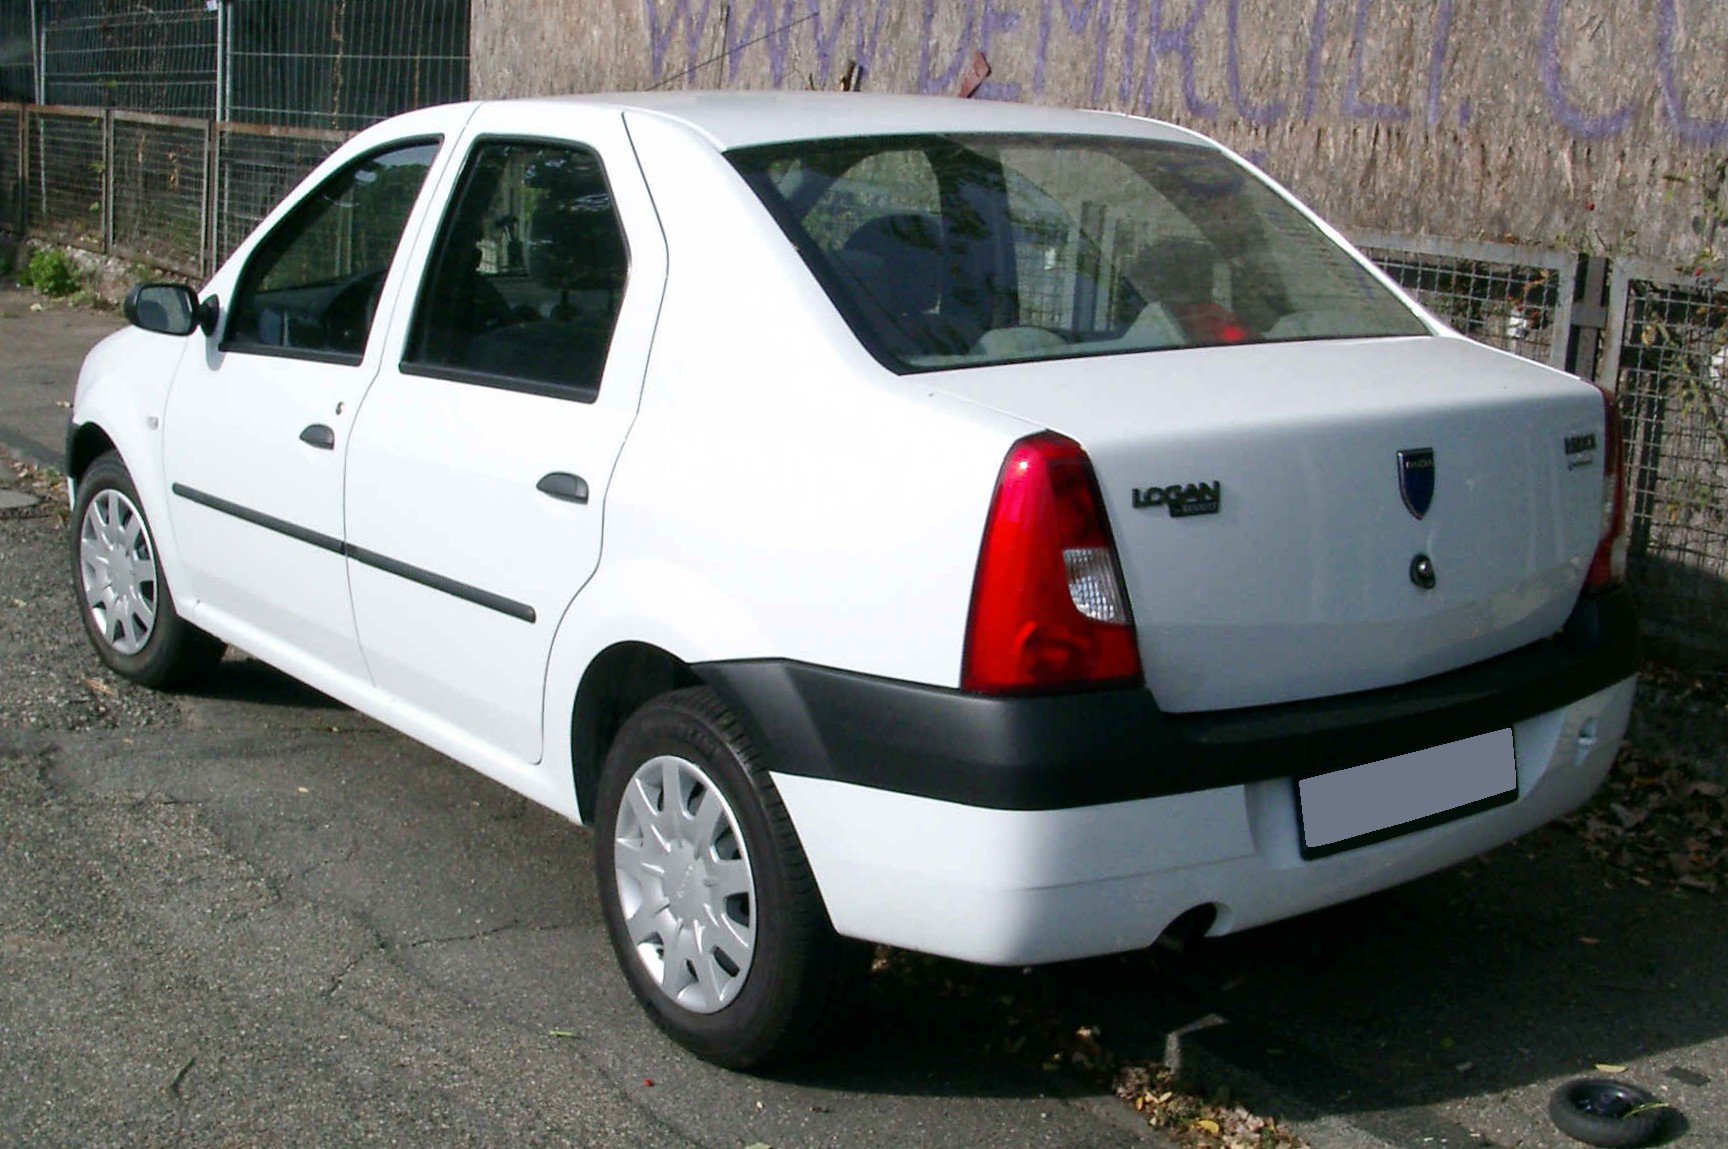 Dacia_Logan_rear_20080917.jpg